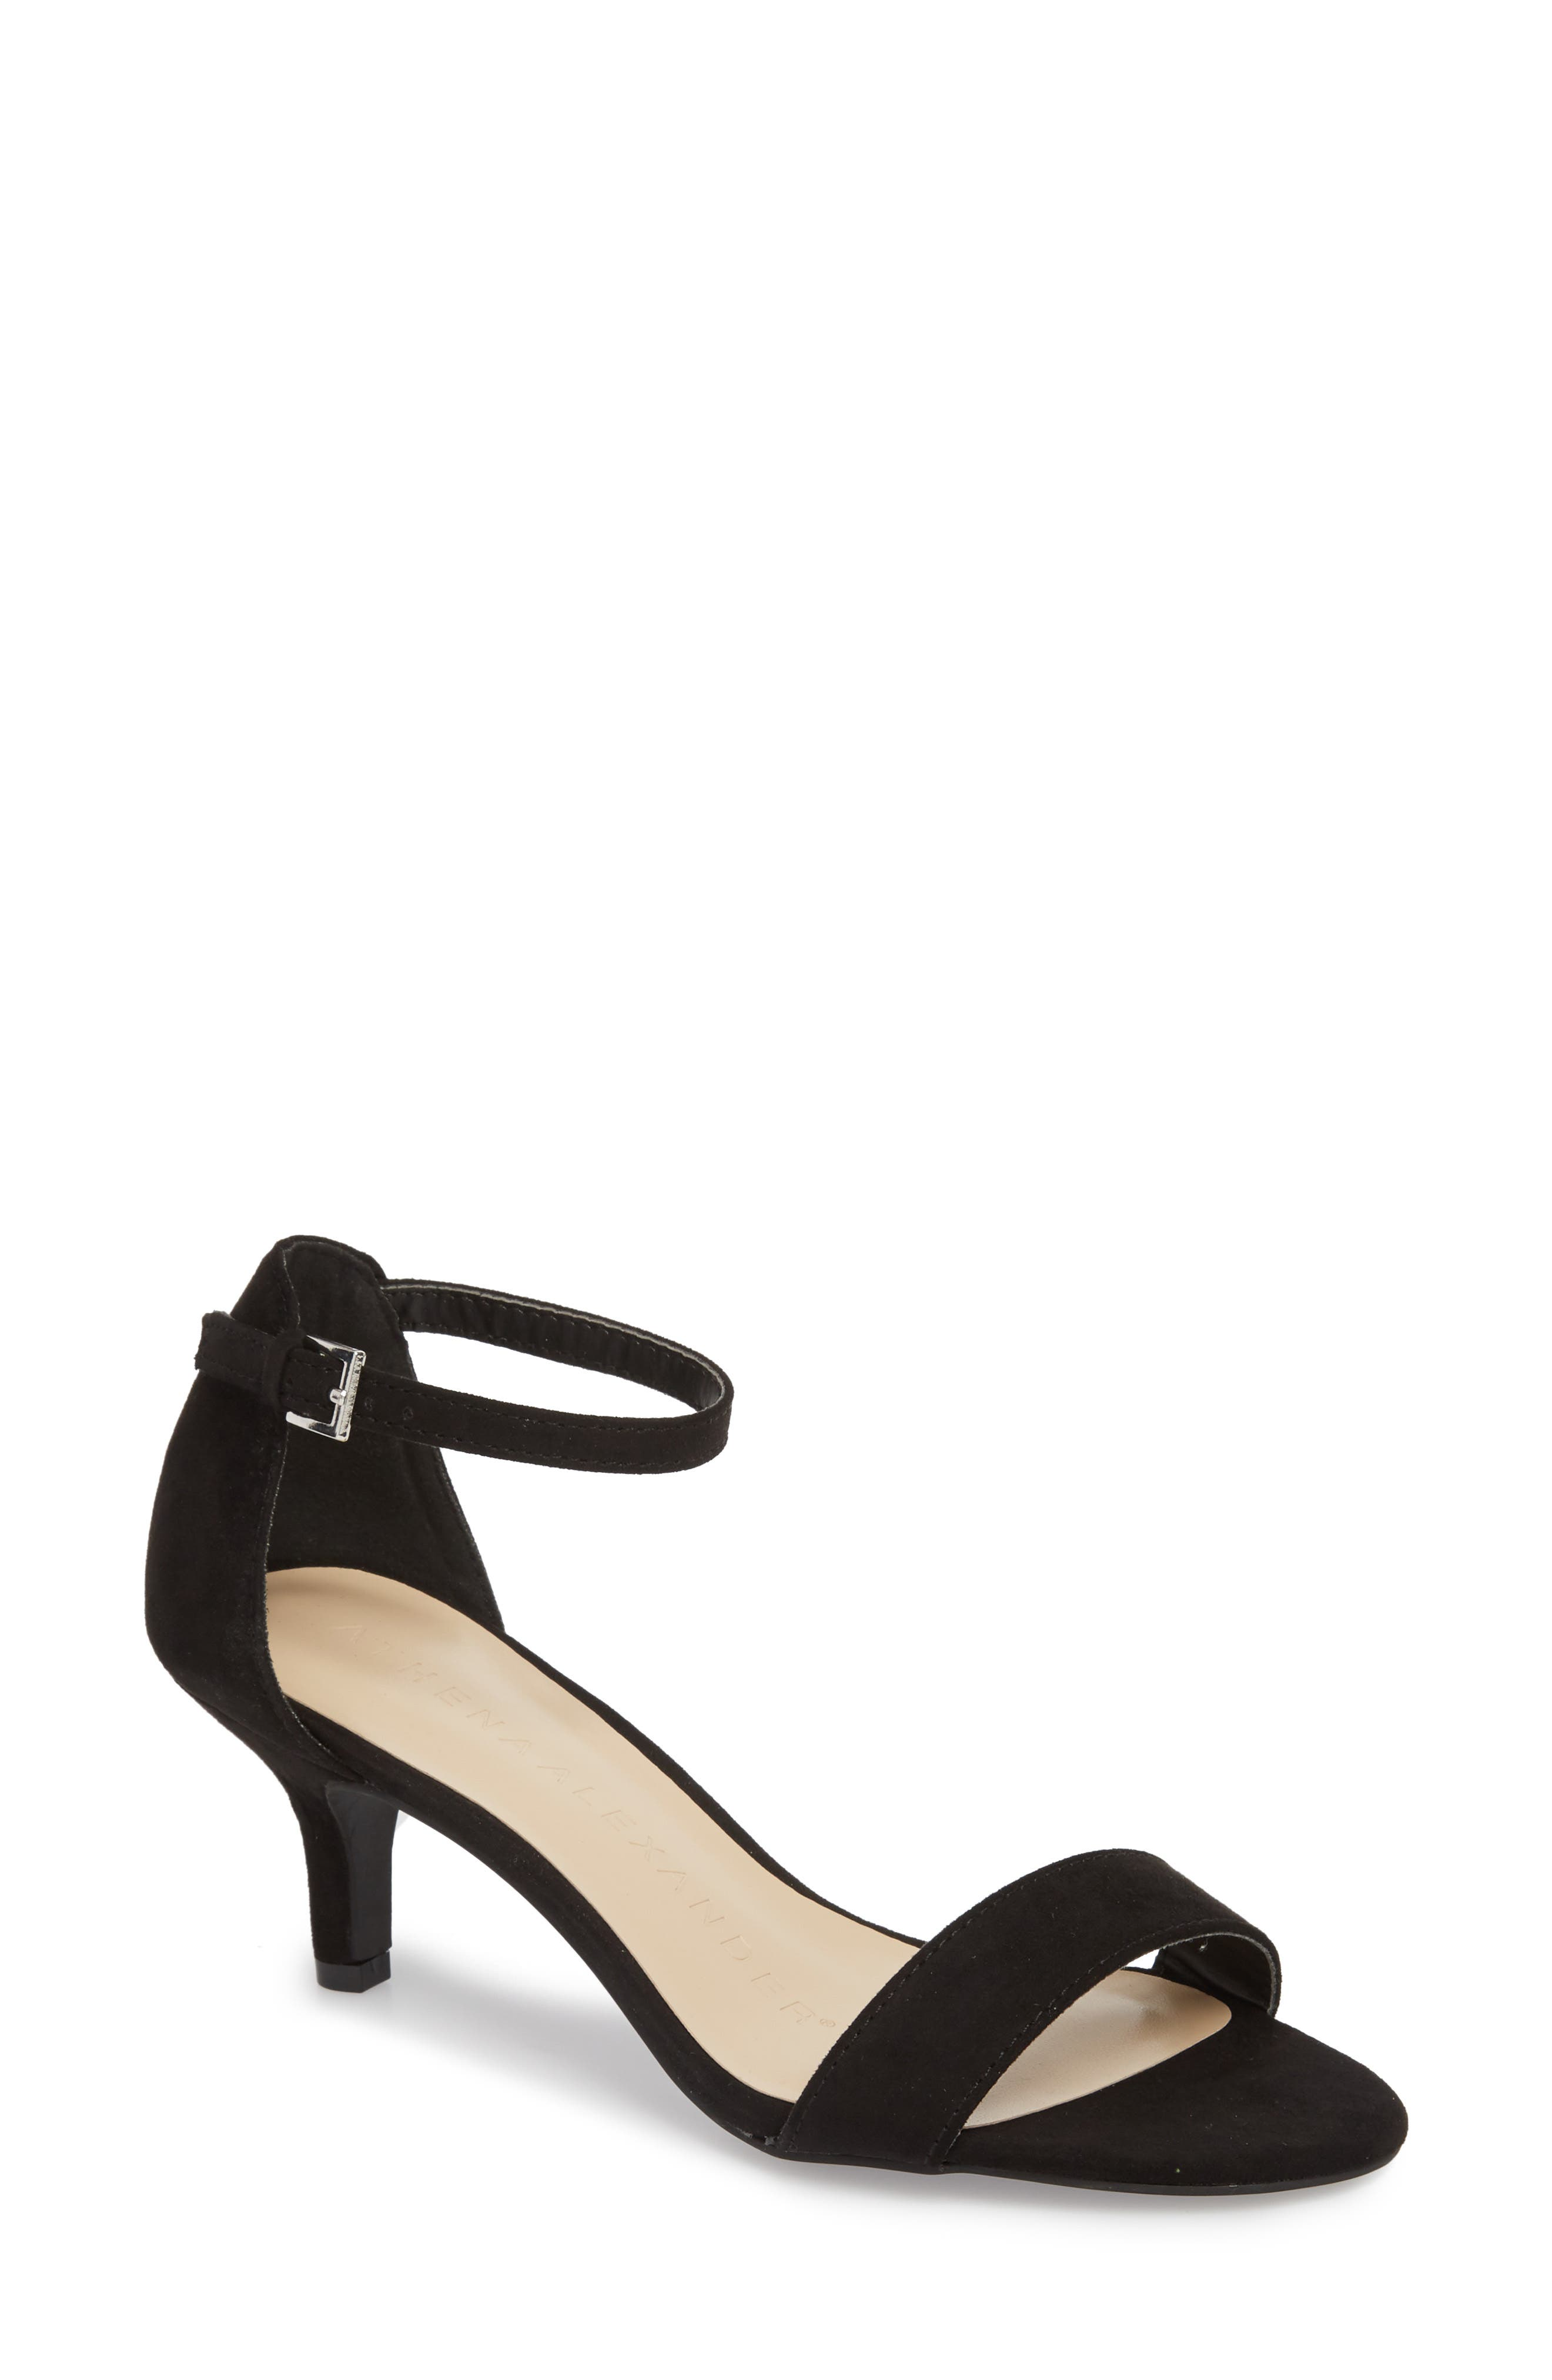 Monroe Sandal,                         Main,                         color, BLACK SUEDE